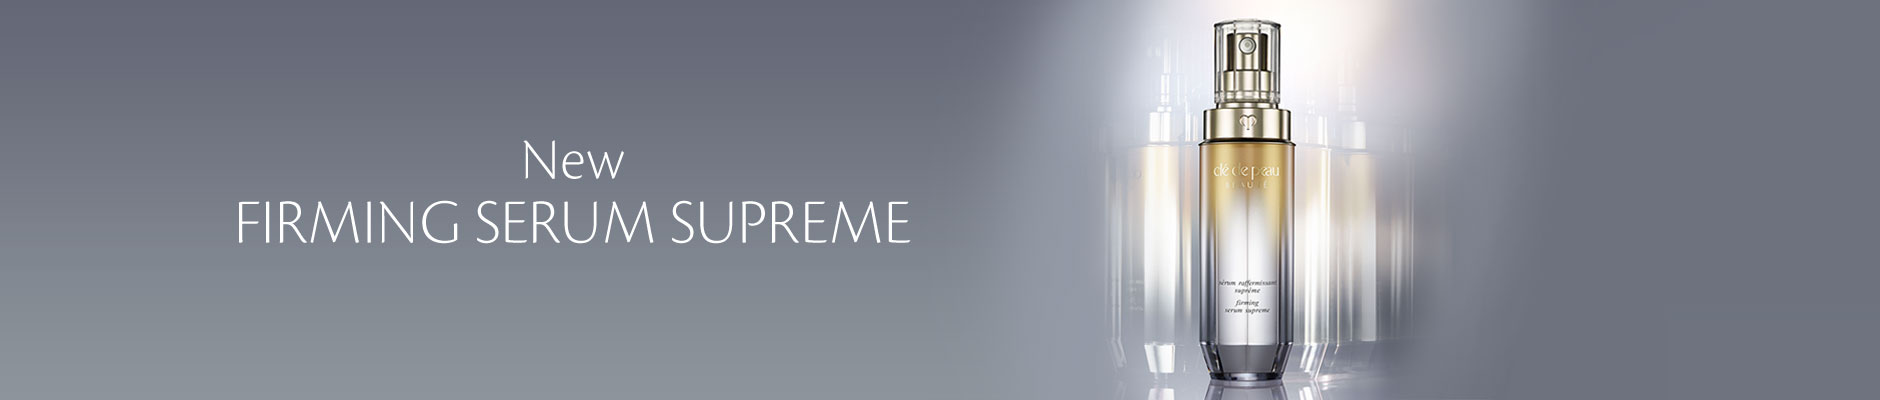 New Firming Serum Supreme